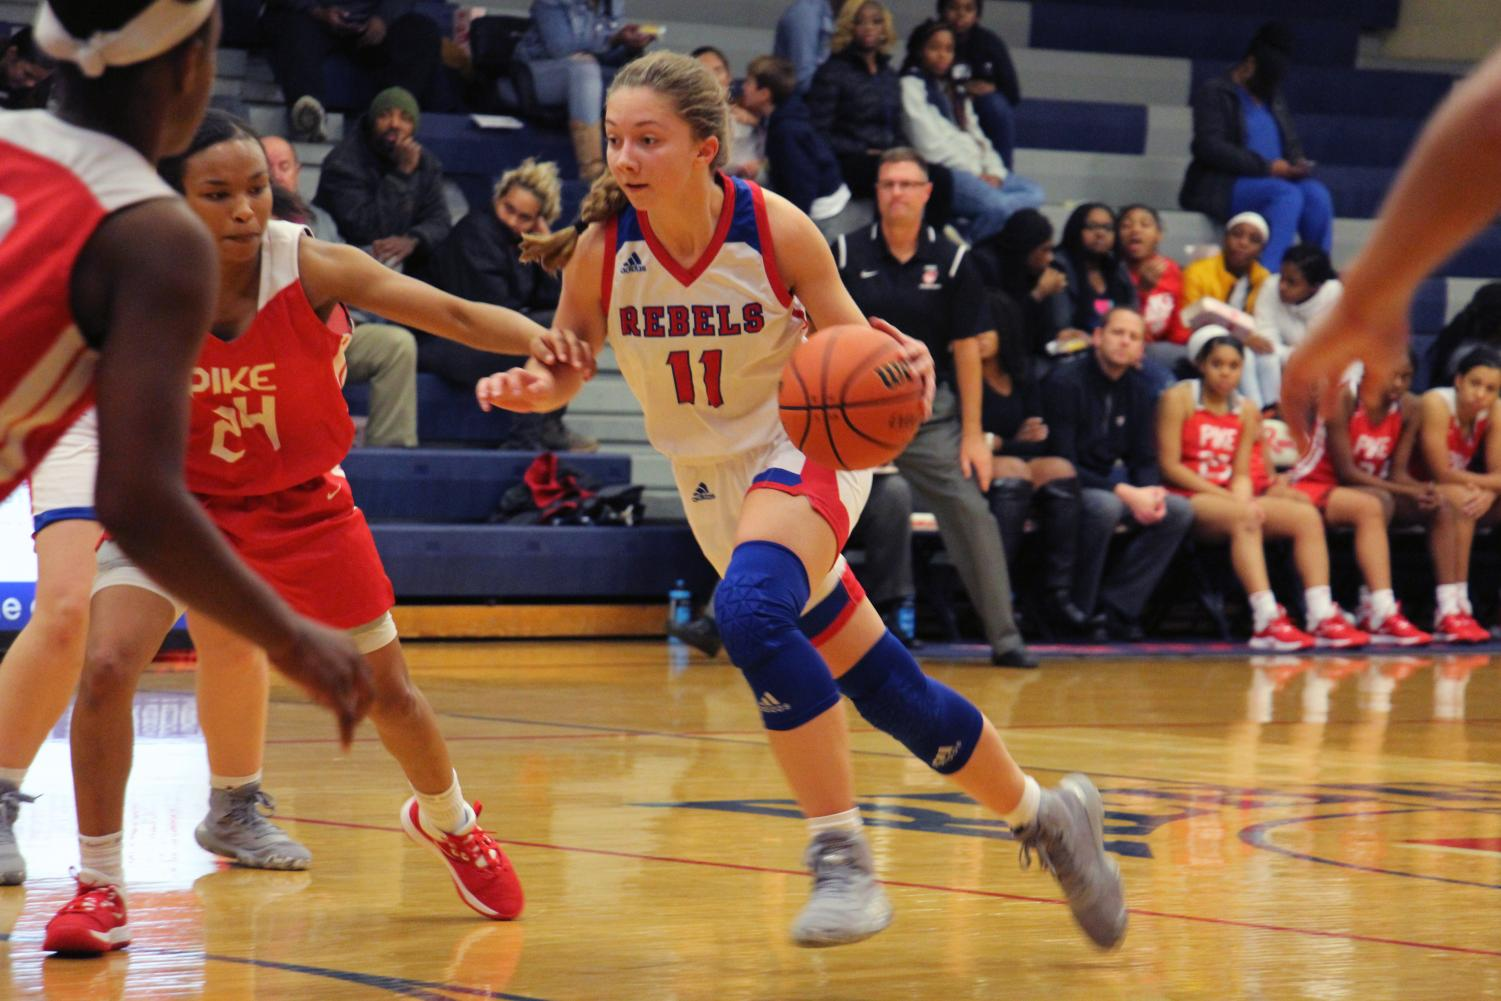 DRIVING IN THE PAINT:  Senior Alana Vinson dribbles the ball down the lane and finishes at the rim. Vinson completed the game with 21 points and nine rebounds.